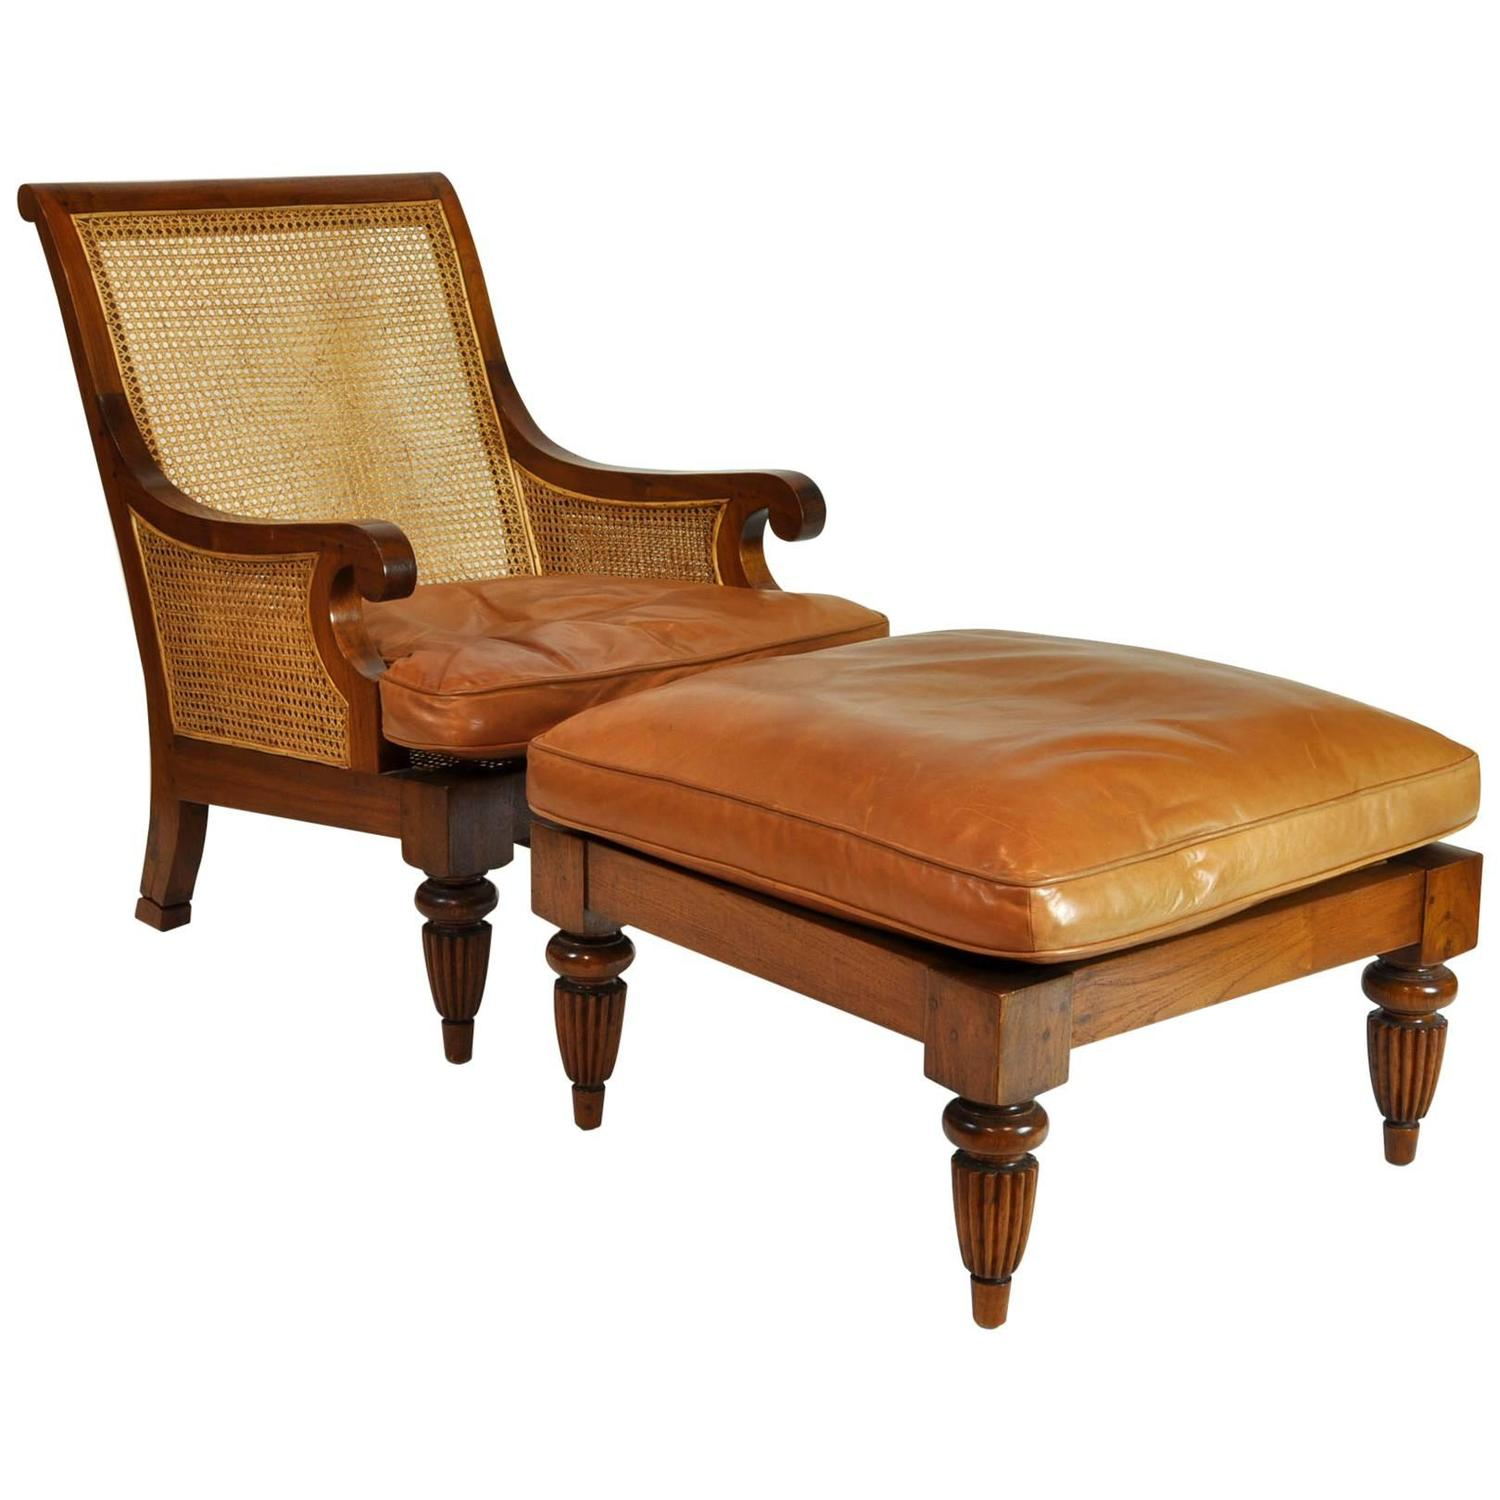 plantation style chairs soft spread the hips british colonial imports caned leather